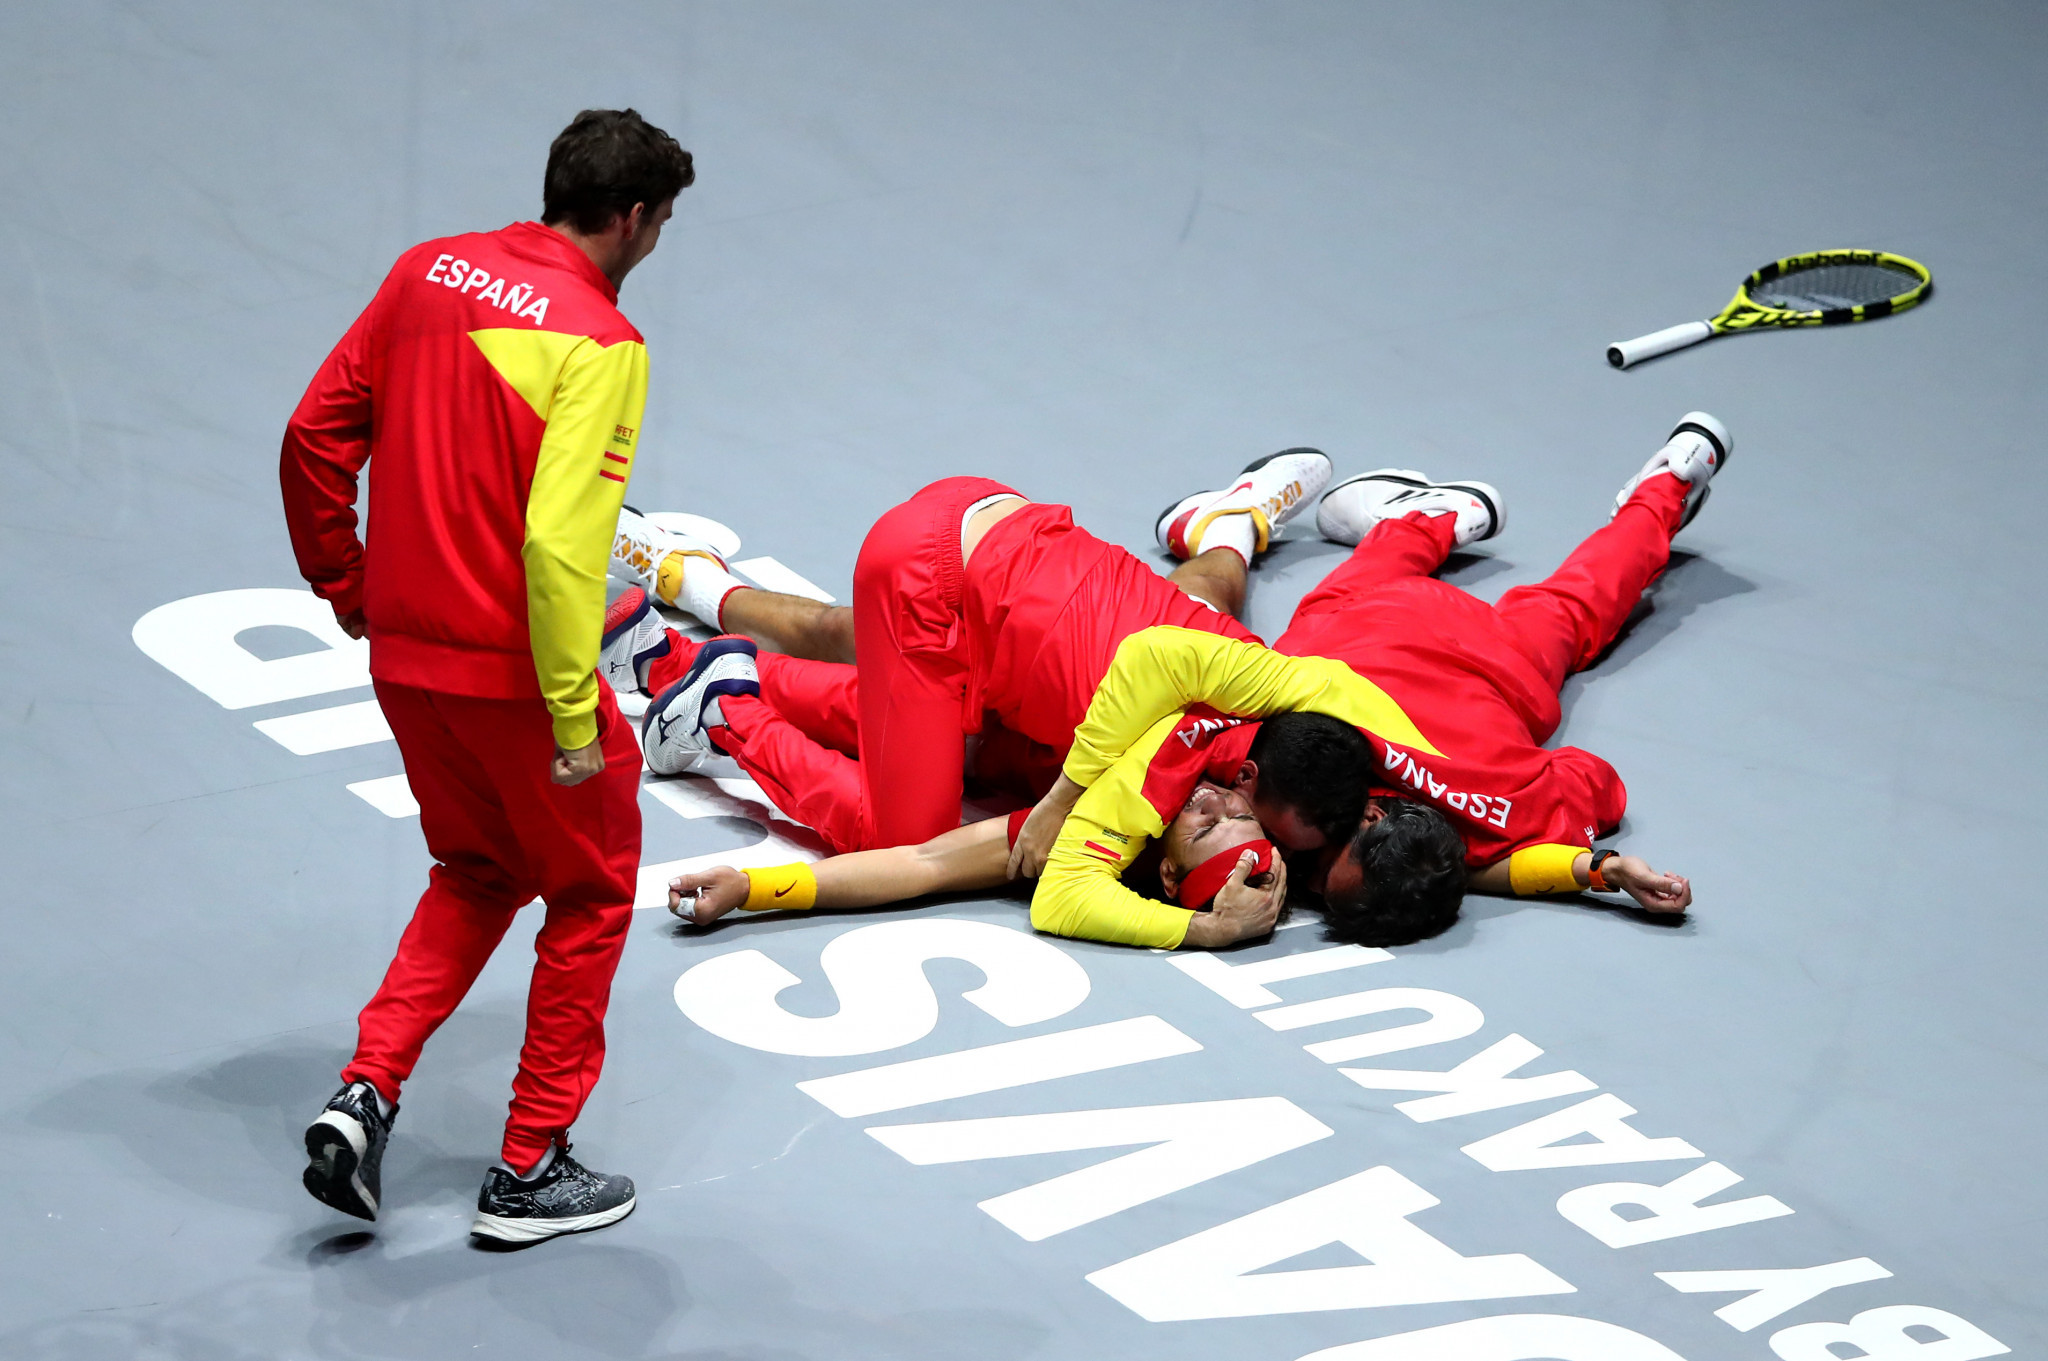 Piqué pessimistic over this year's Davis Cup due to potential restrictions on spectators